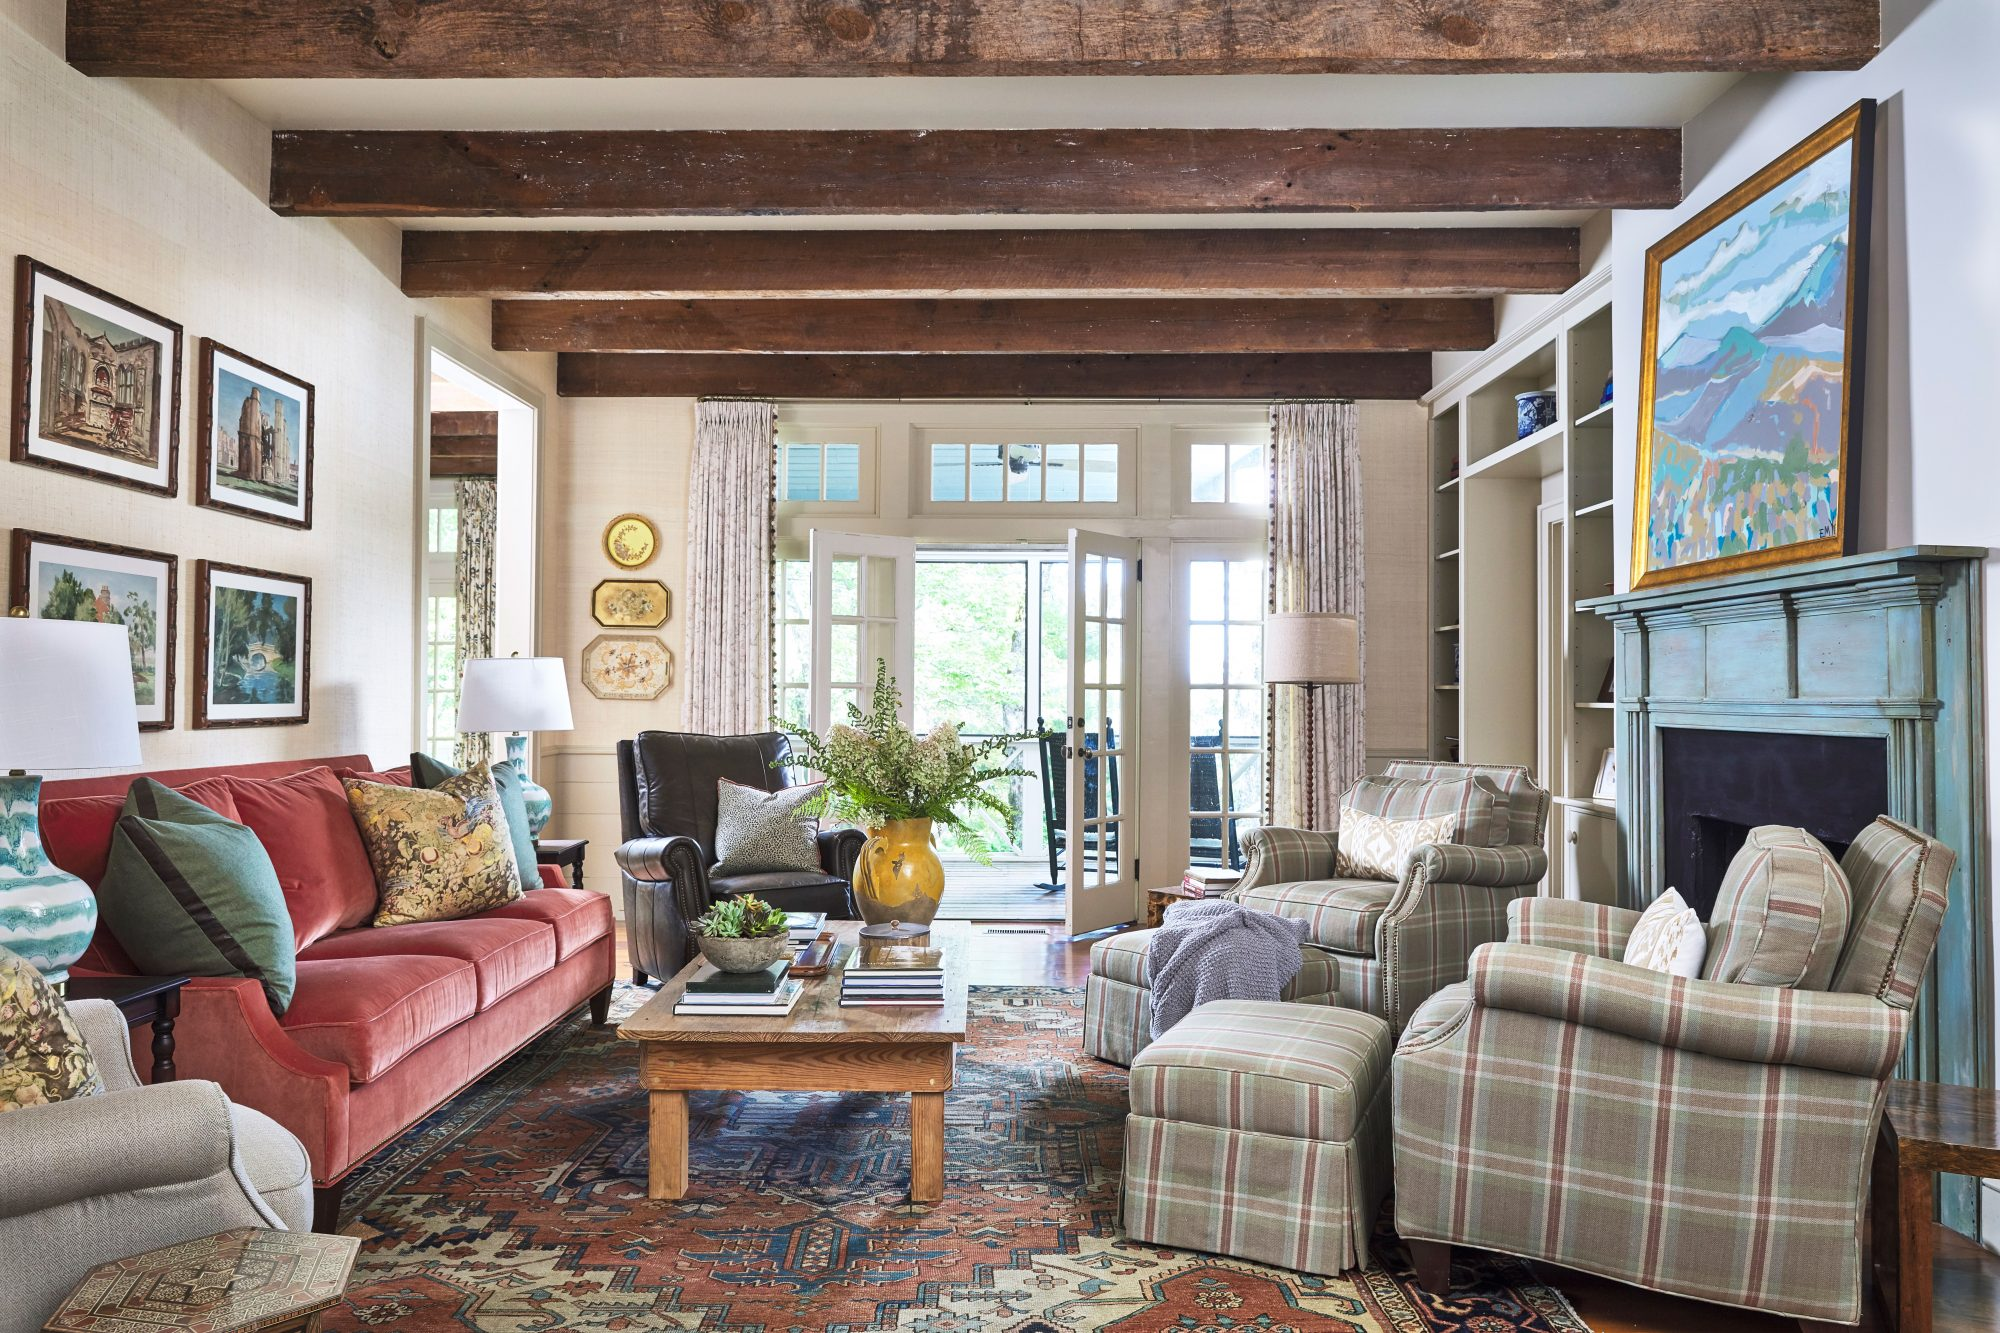 Mountain Cottage Living Room with Exposed Beams and Plaid Chairs